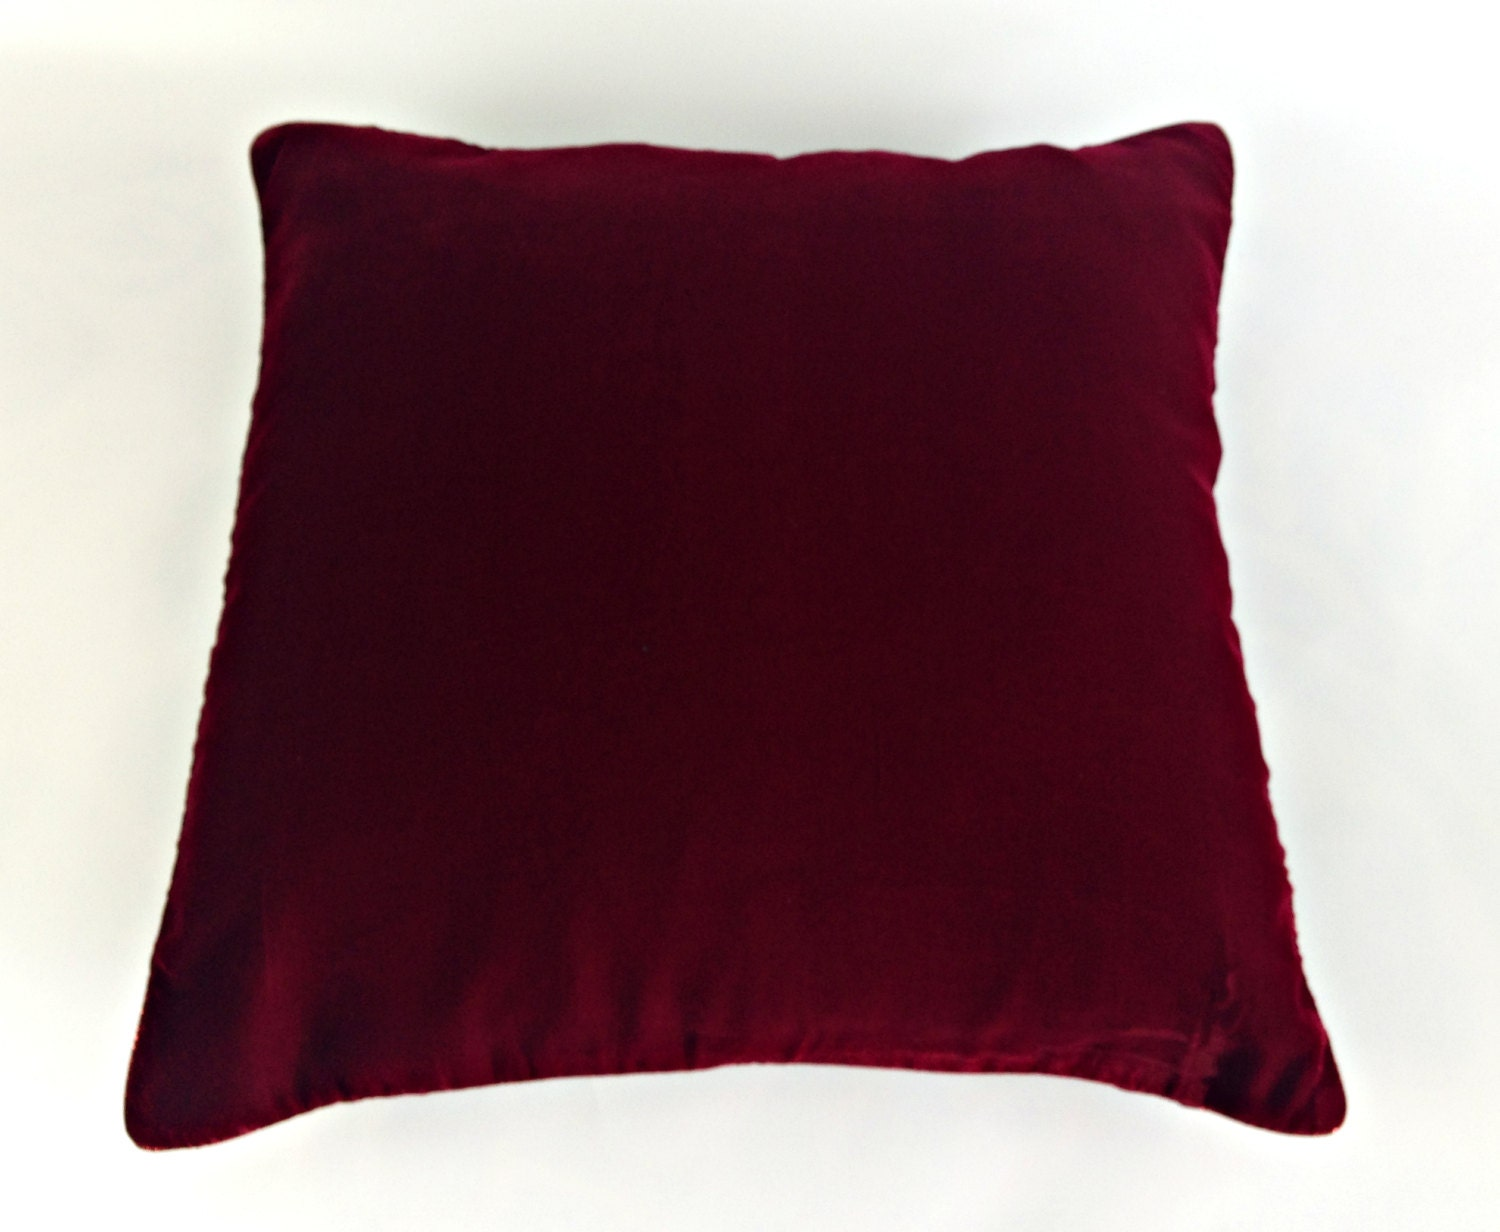 Throw Pillows Maroon : Velvet Pillow Burgundy pillow Plush Dorm Throw by FusionHomeStudio